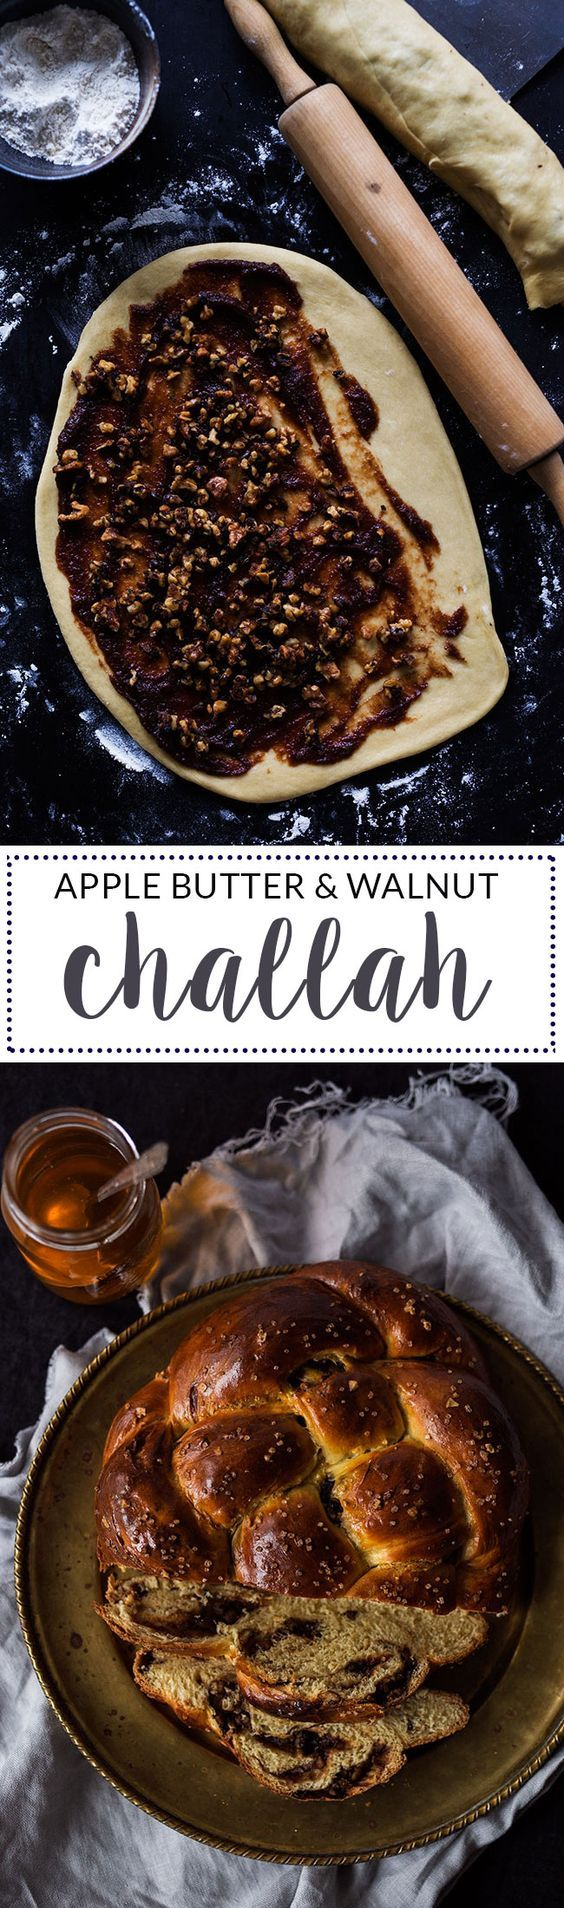 181 best jewish food images on pinterest jewish recipes jewish stuffed challah with apple butter and walnuts a great recipe for rosh hashanah one jewish breadjewish foodapple forumfinder Gallery